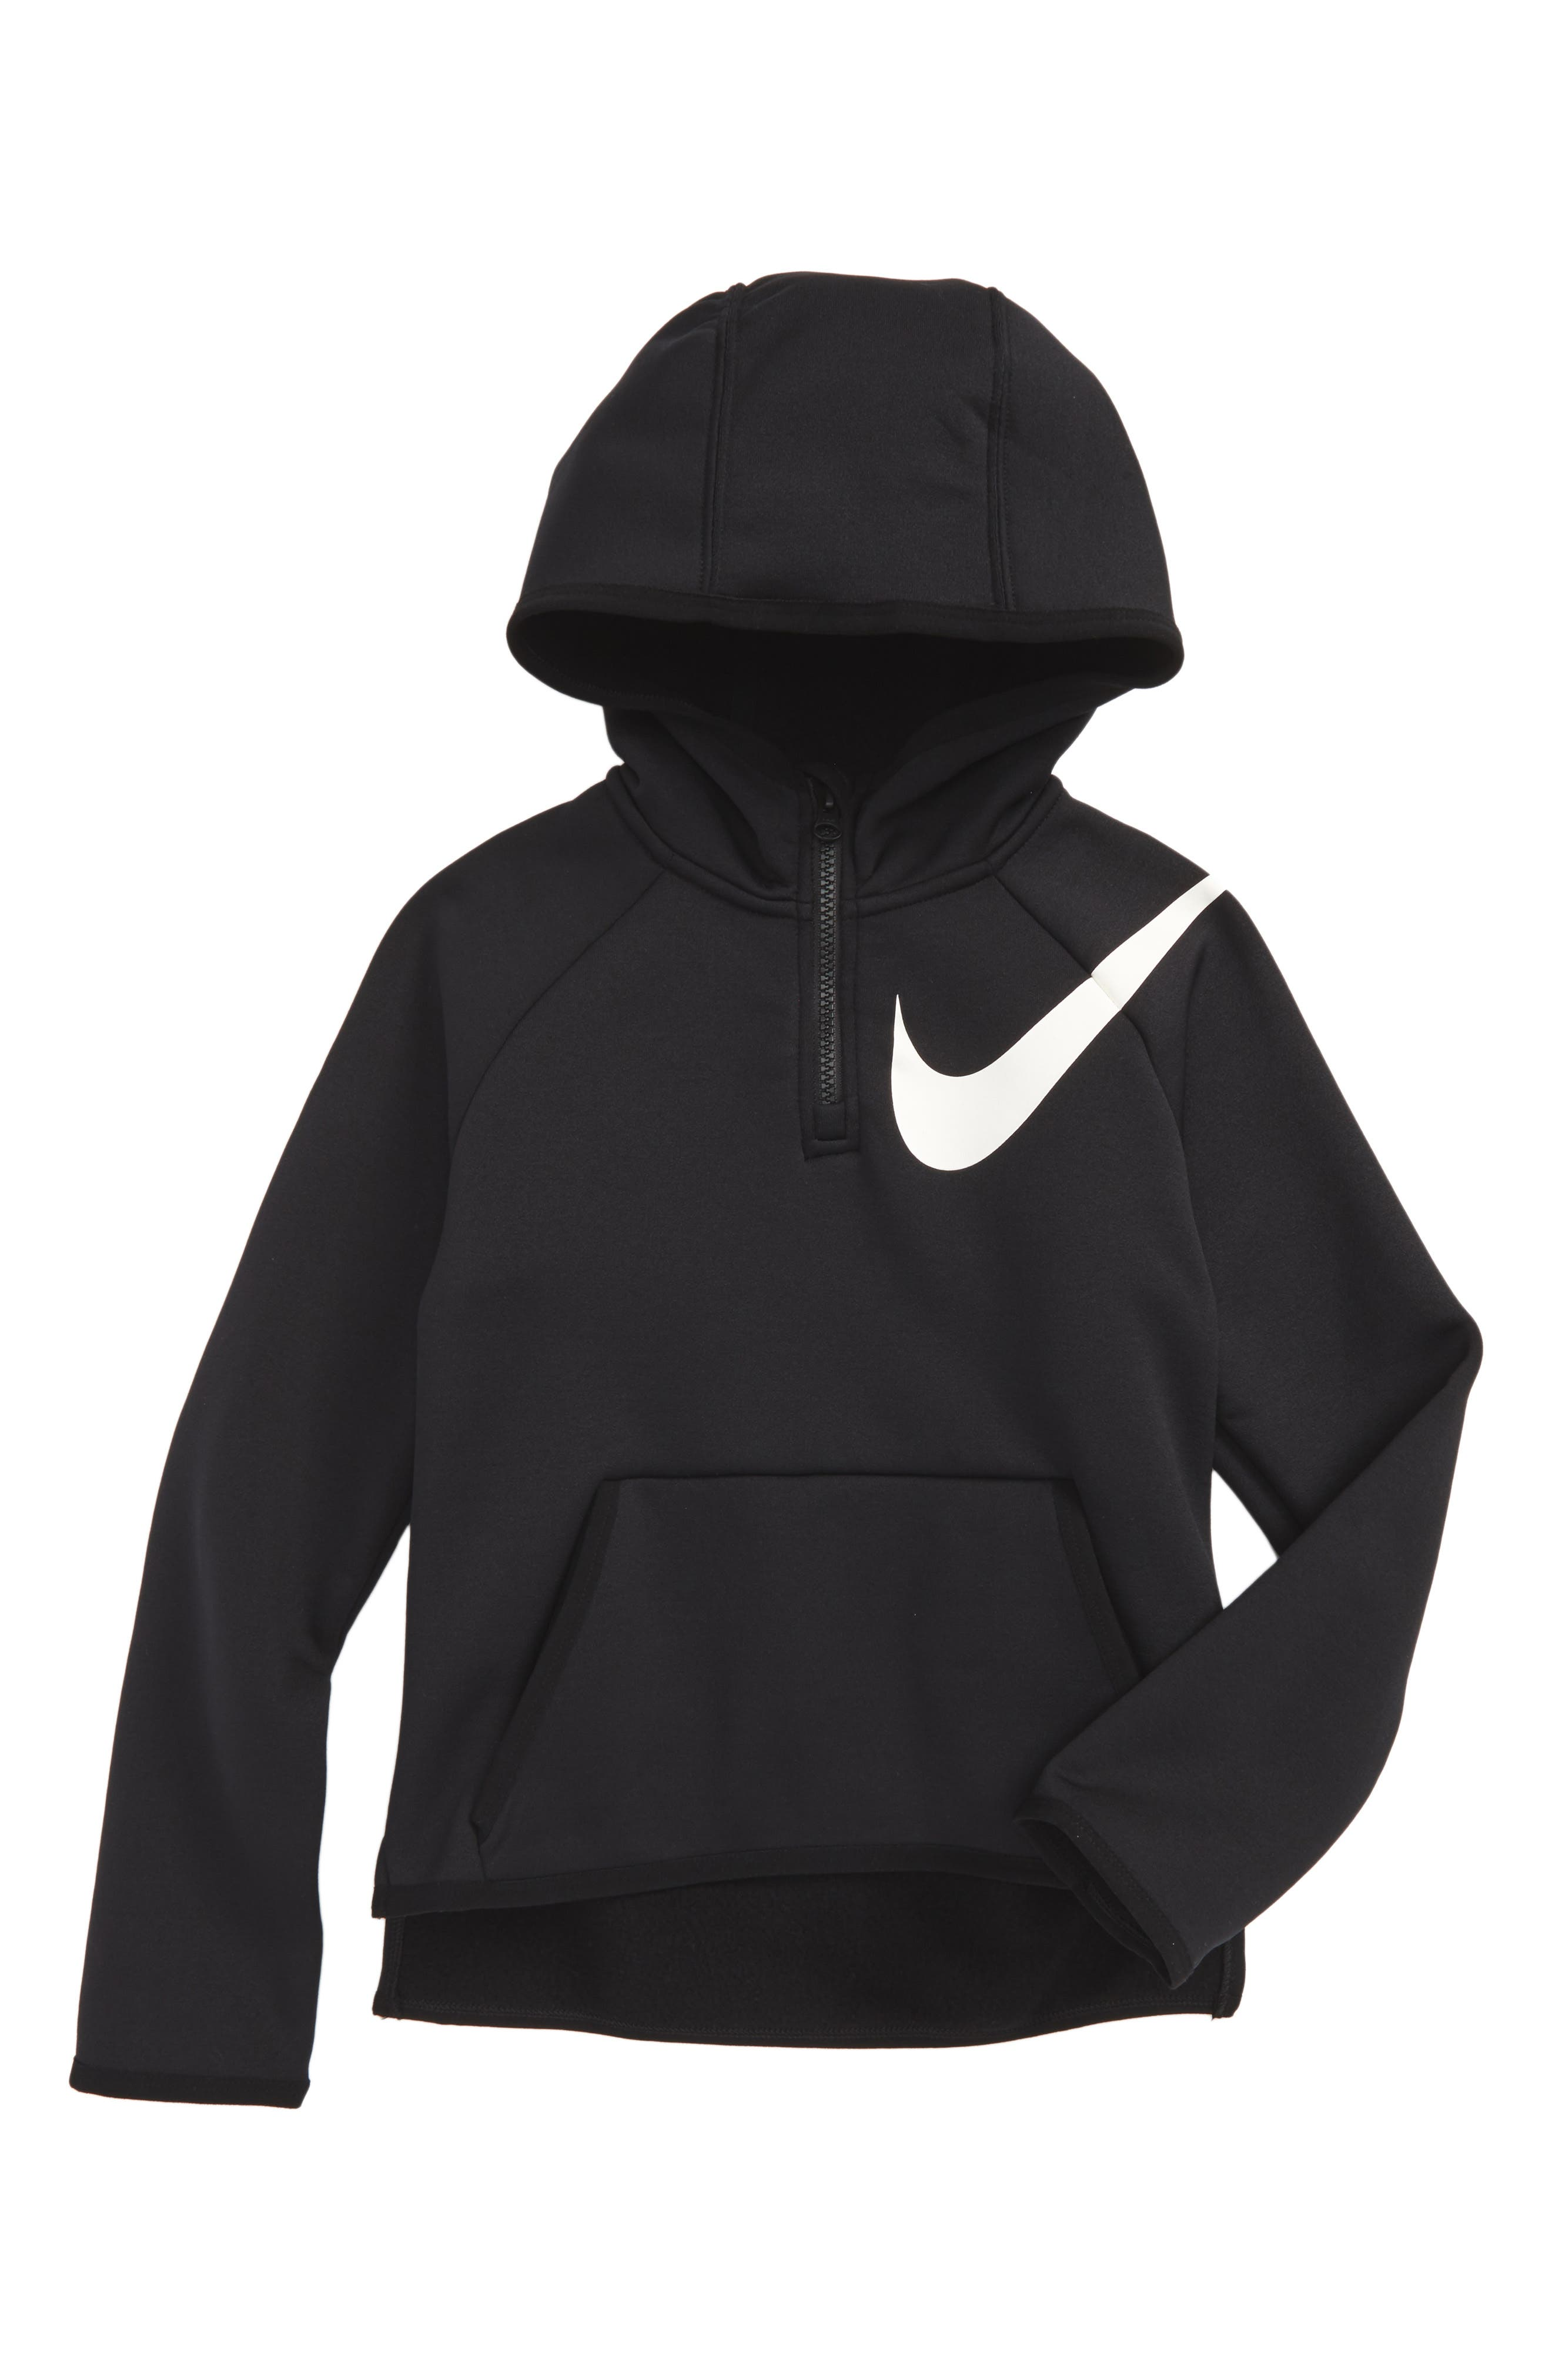 Therma-FIT Half Zip Hoodie,                             Main thumbnail 1, color,                             Black/ White